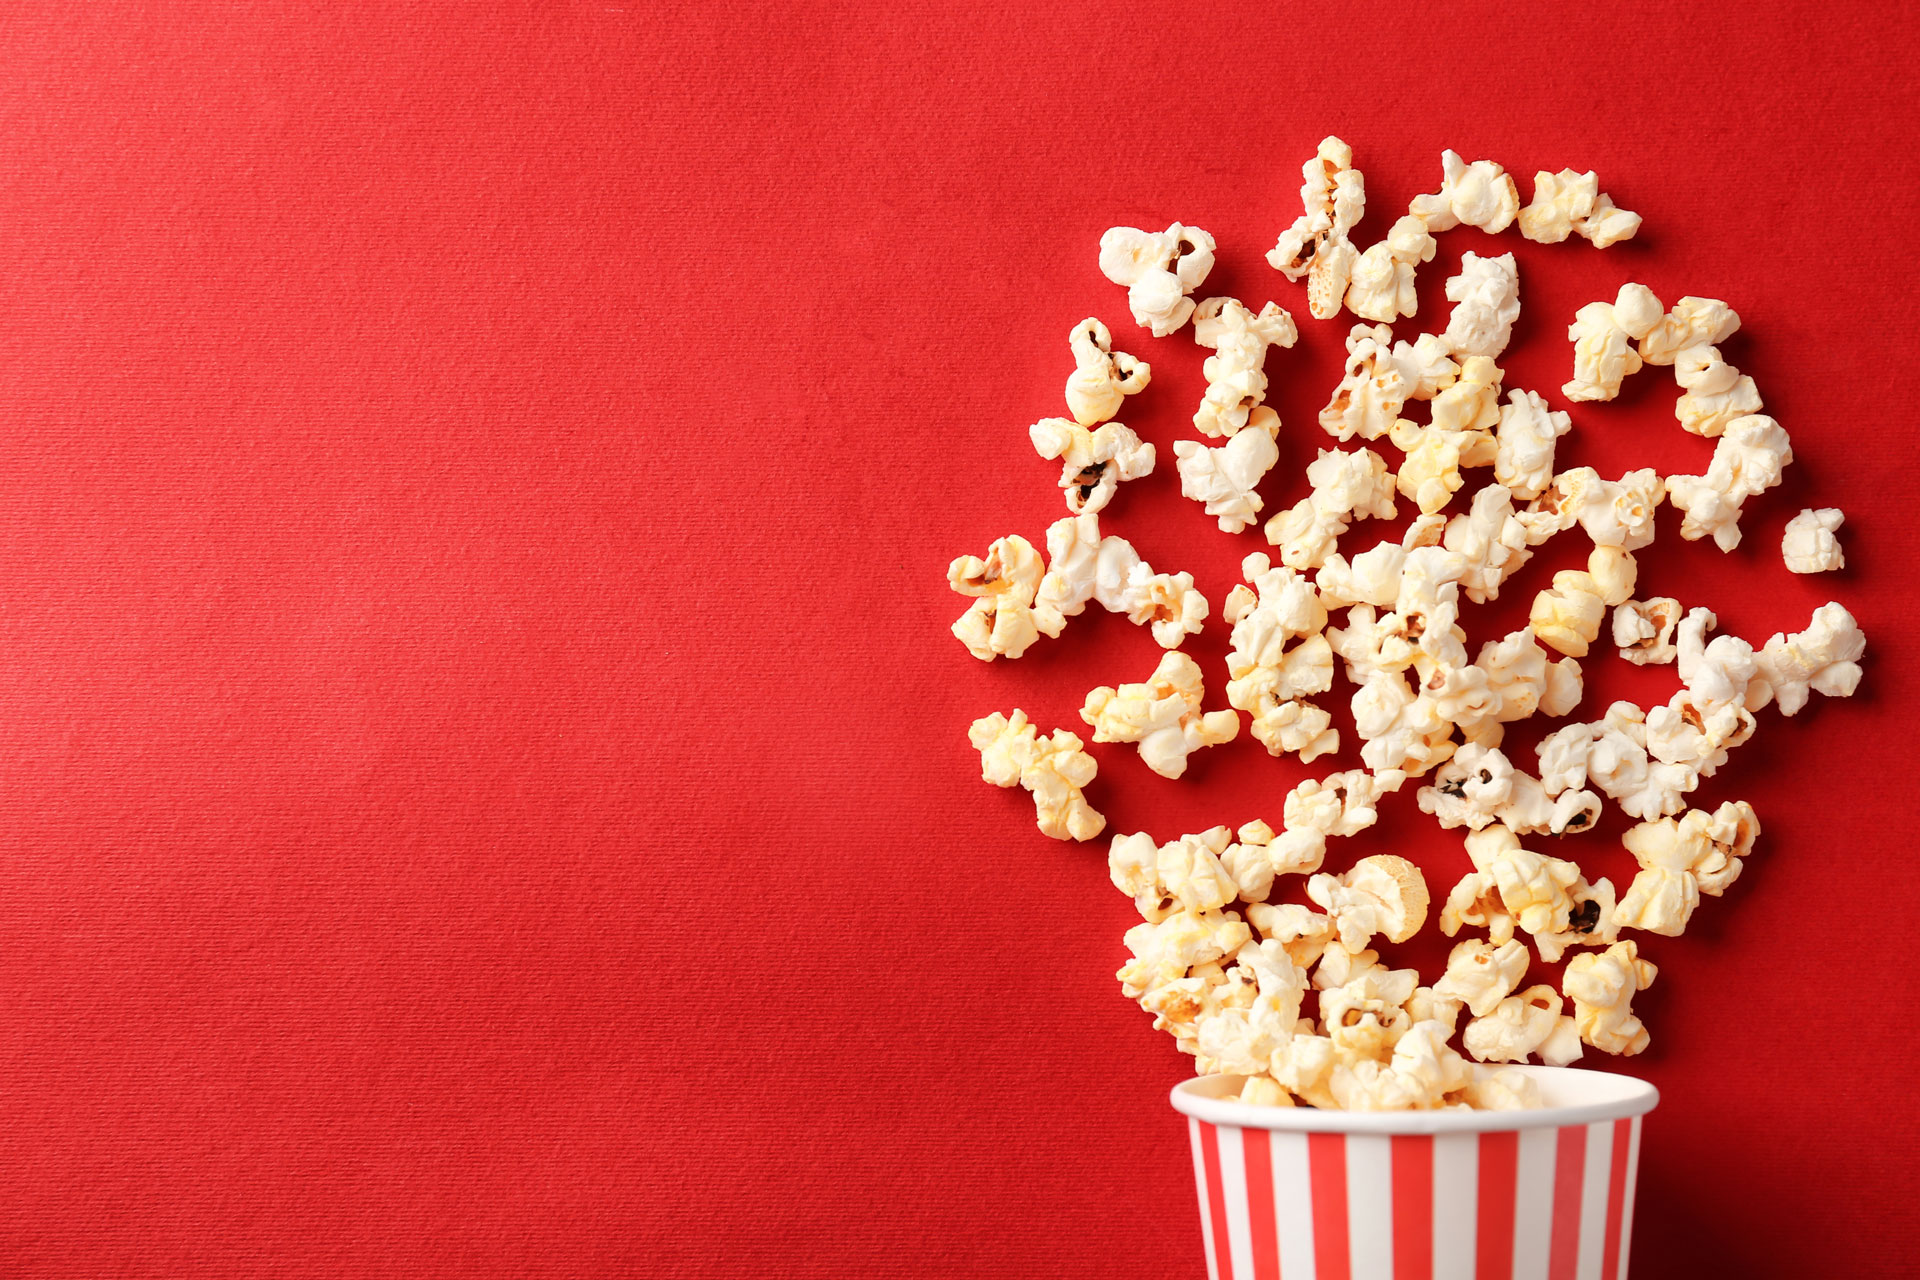 red background with bucket of popcorn